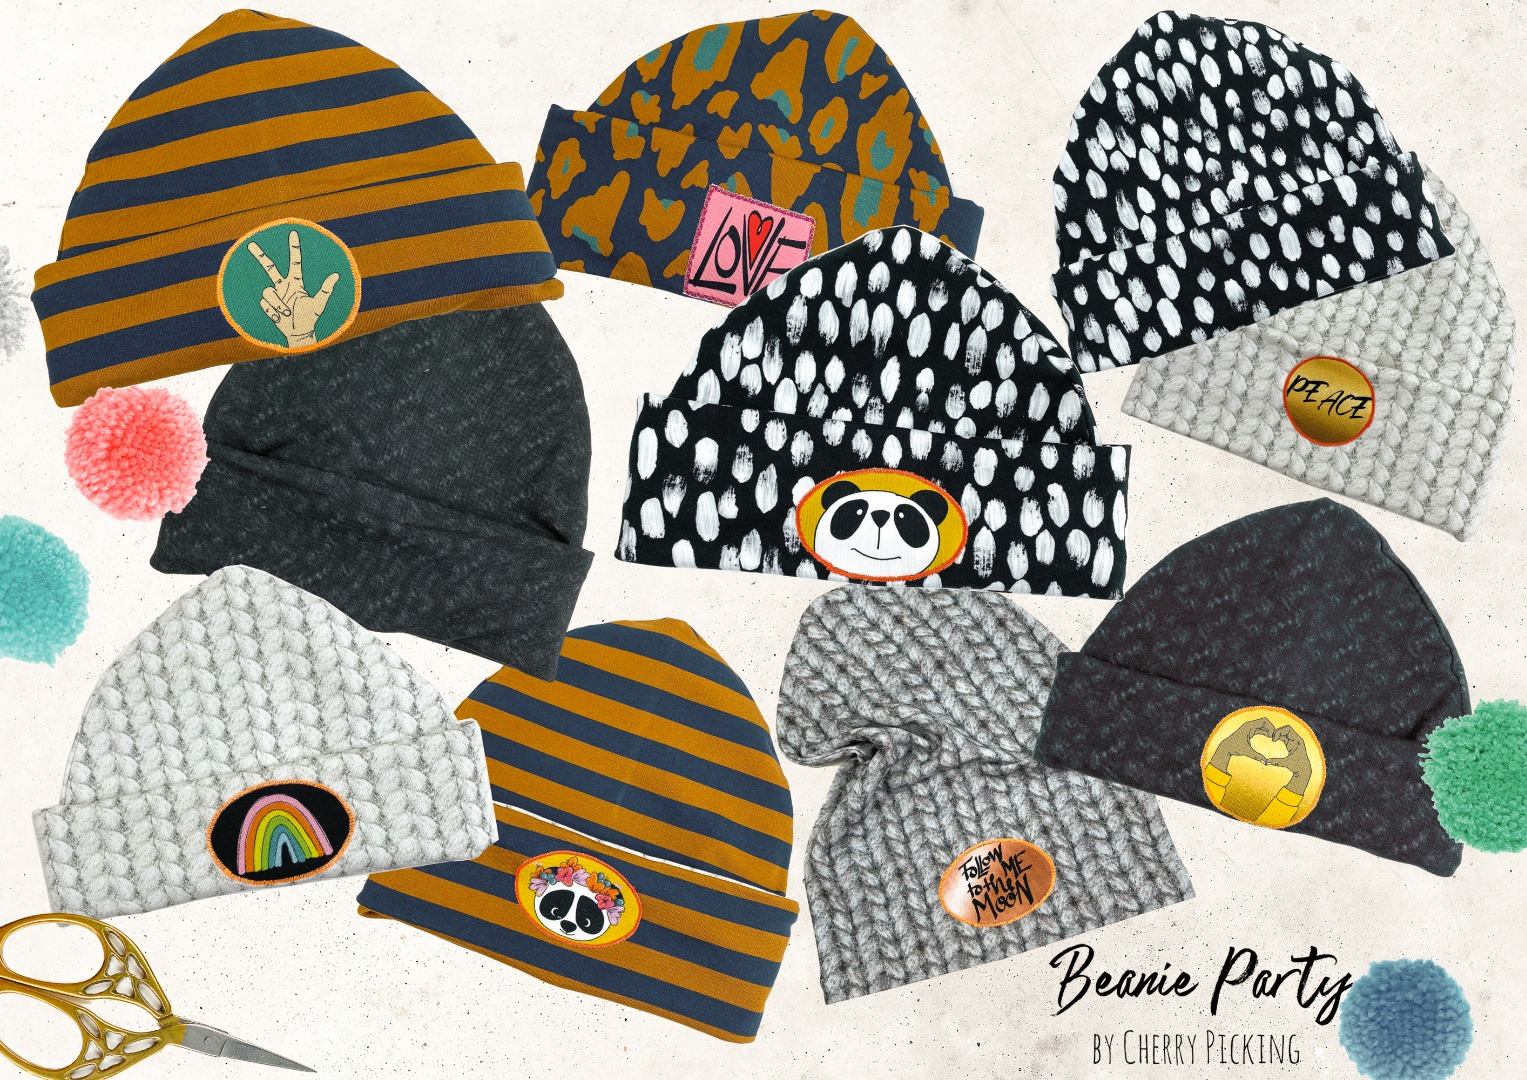 Panel Beanie Party Cherry Picking Modalsweat